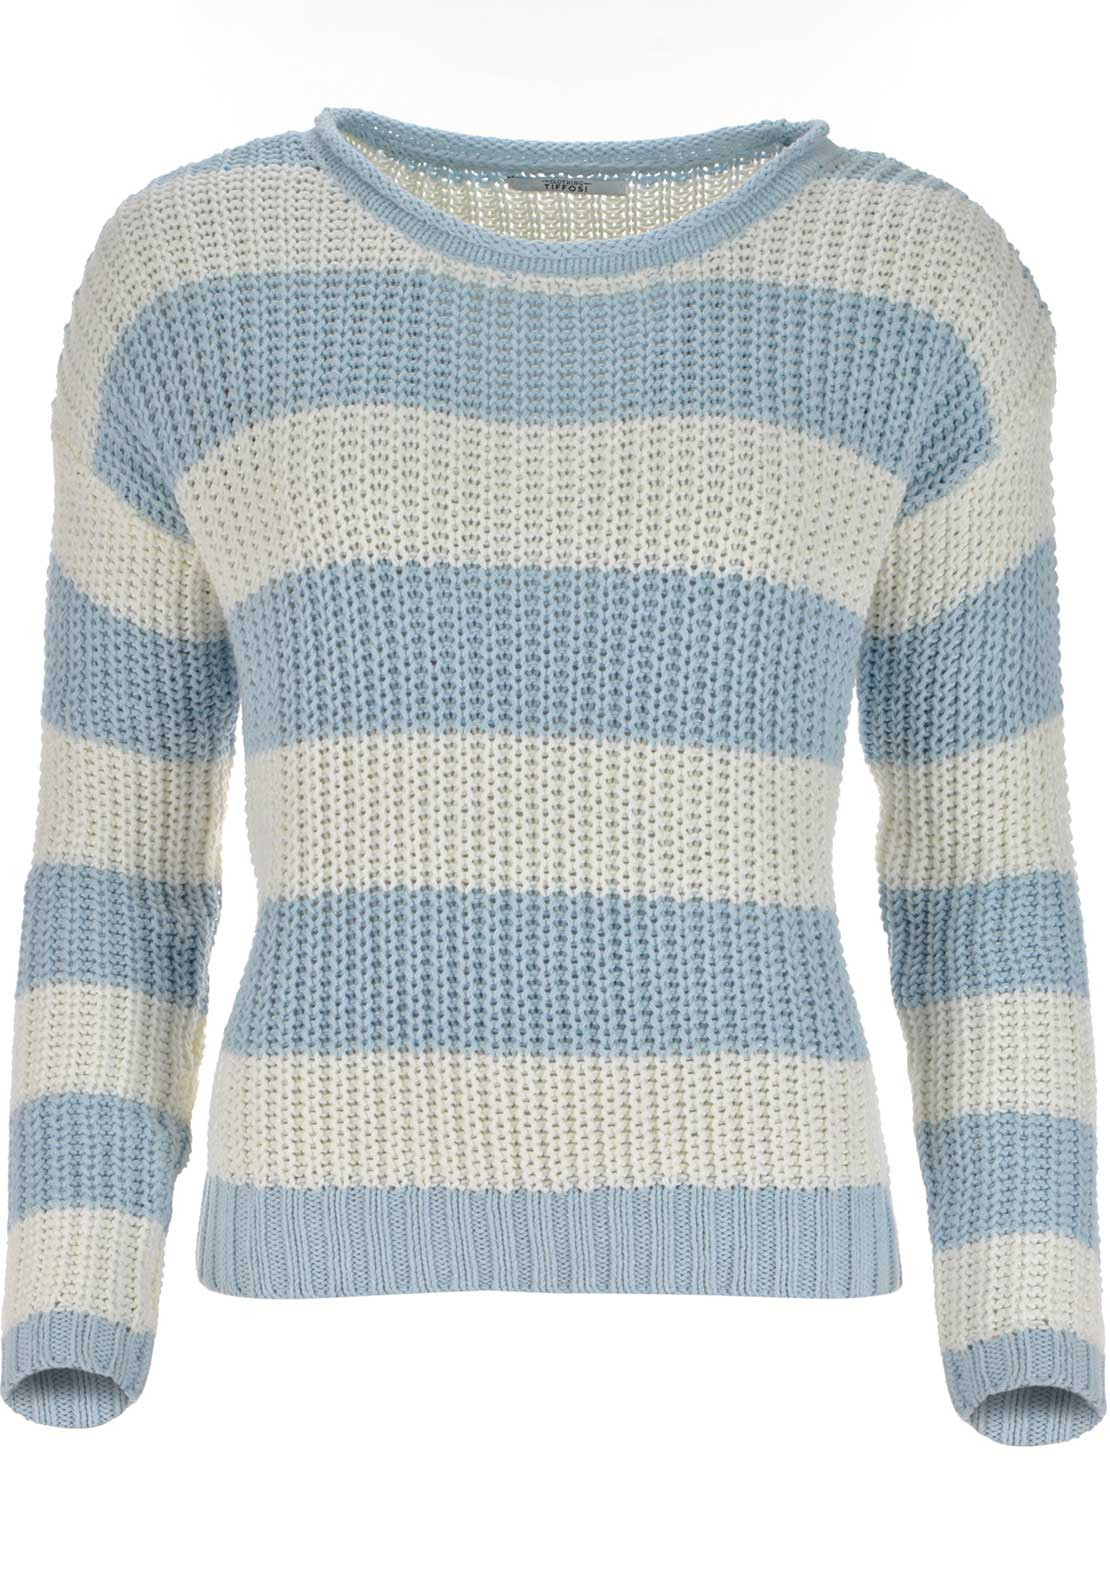 Tiffosi Womens Gully Striped Knitted Jumper, Blue and White